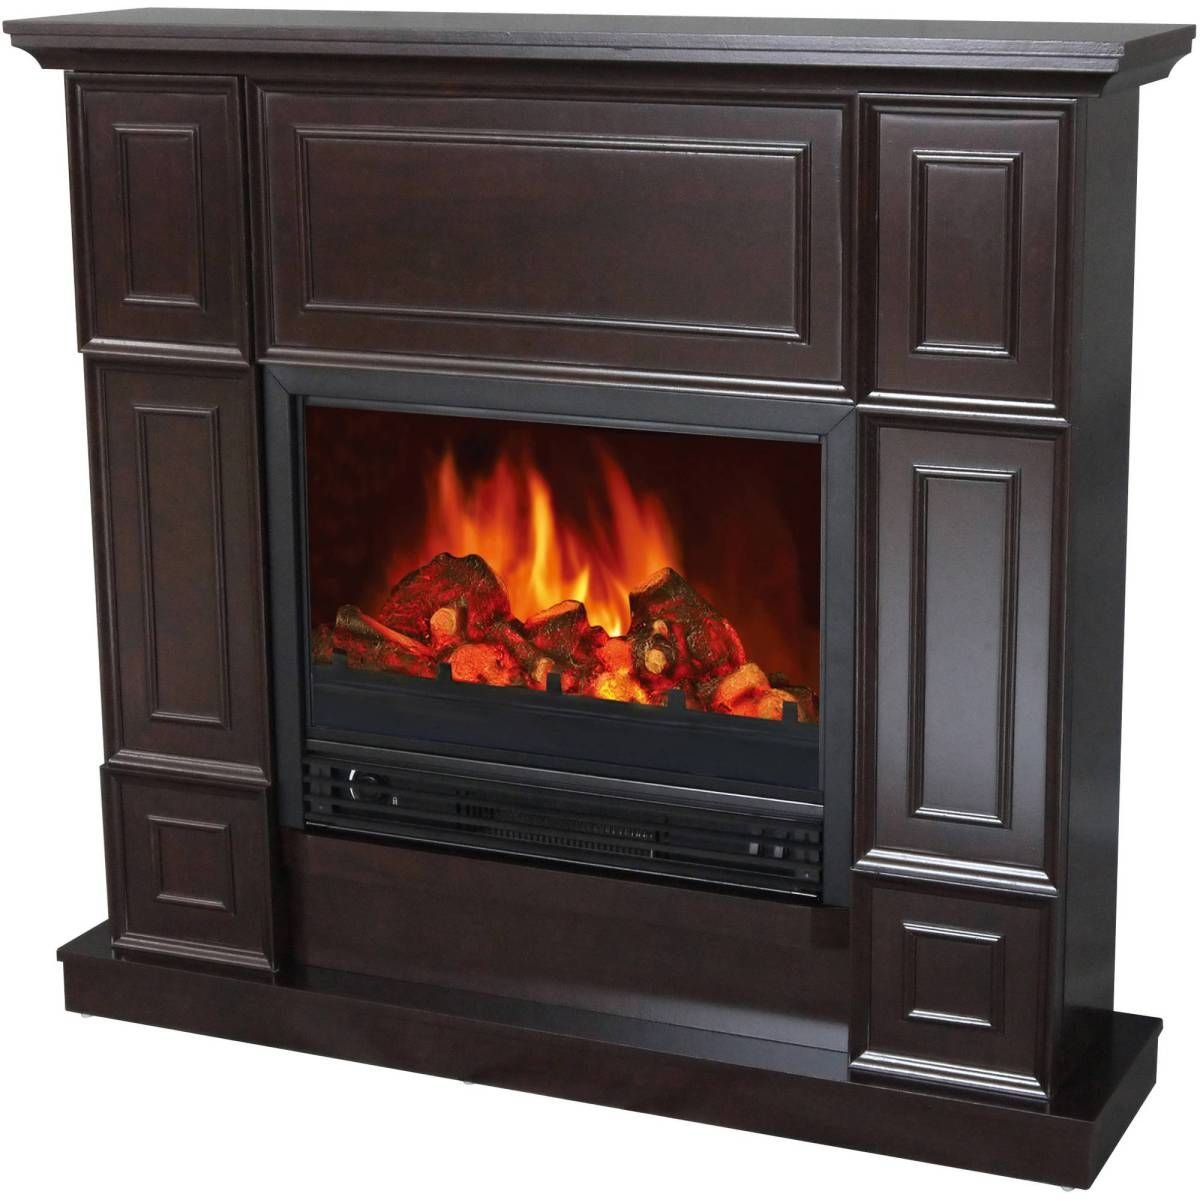 Decor Flame Electric Fireplace Space Heater With 44 Mantle